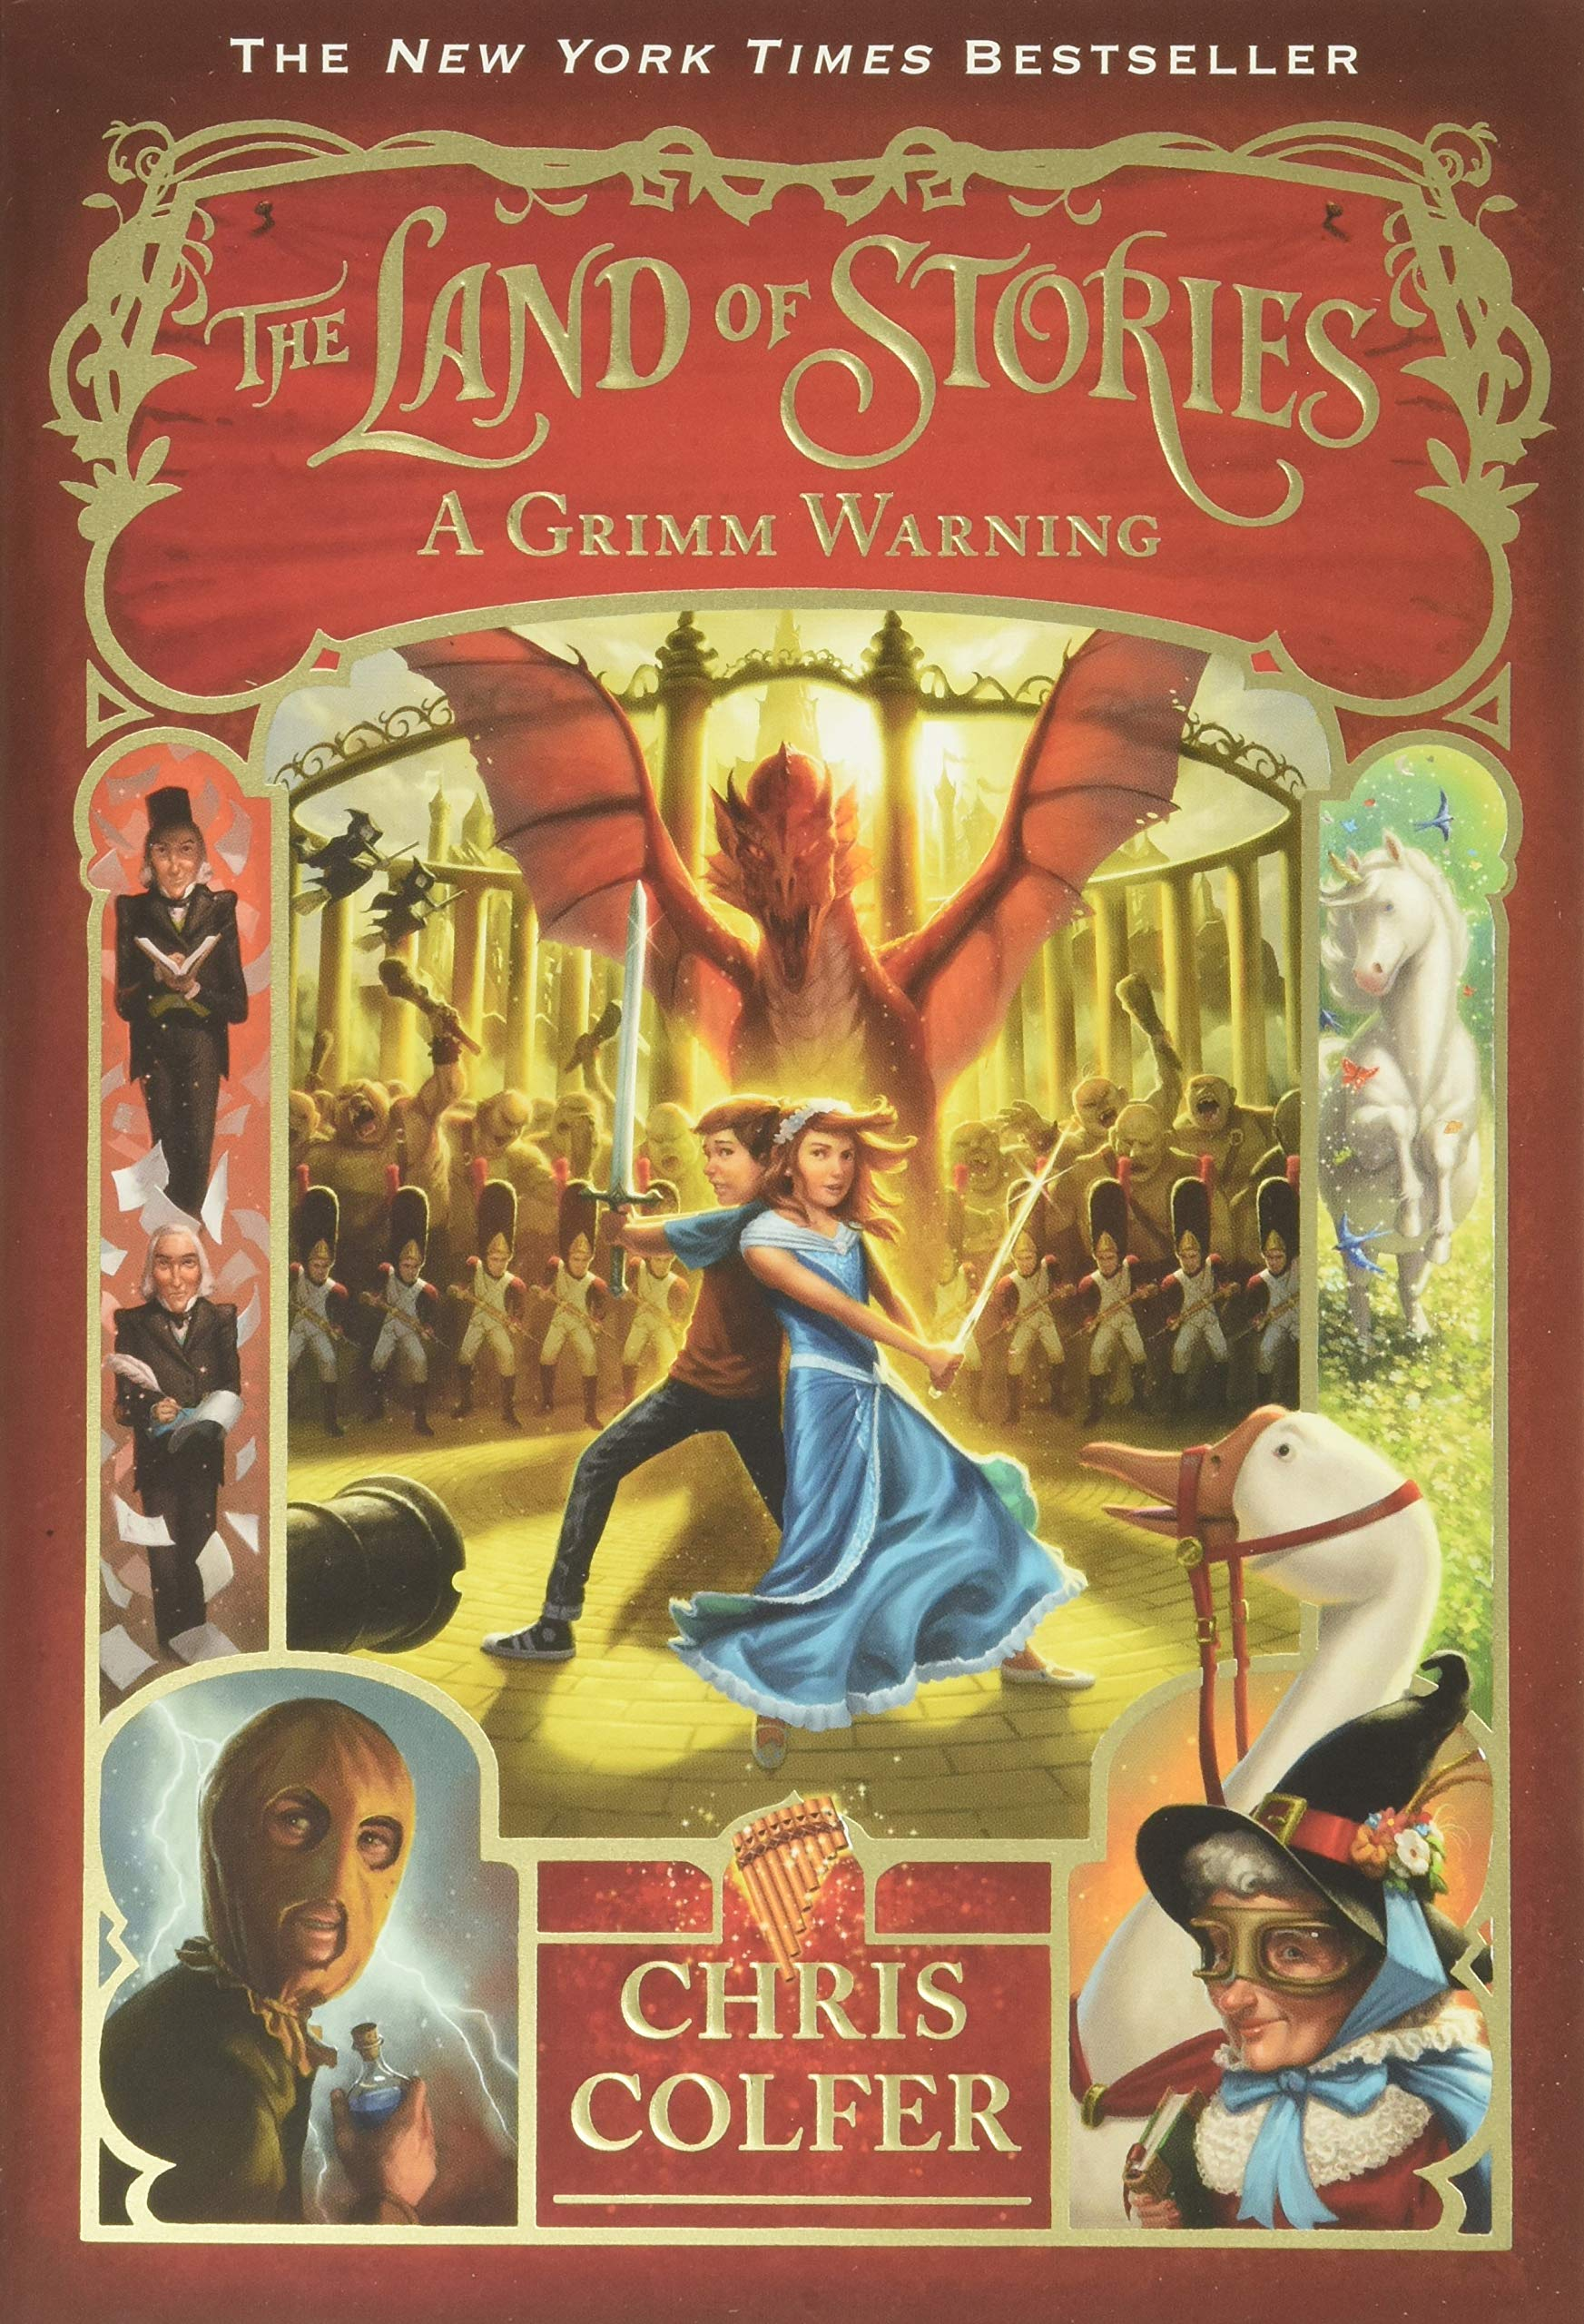 An inspirational book full of classic fairytales: The 12 Labours of Dad and Other Adventures 20